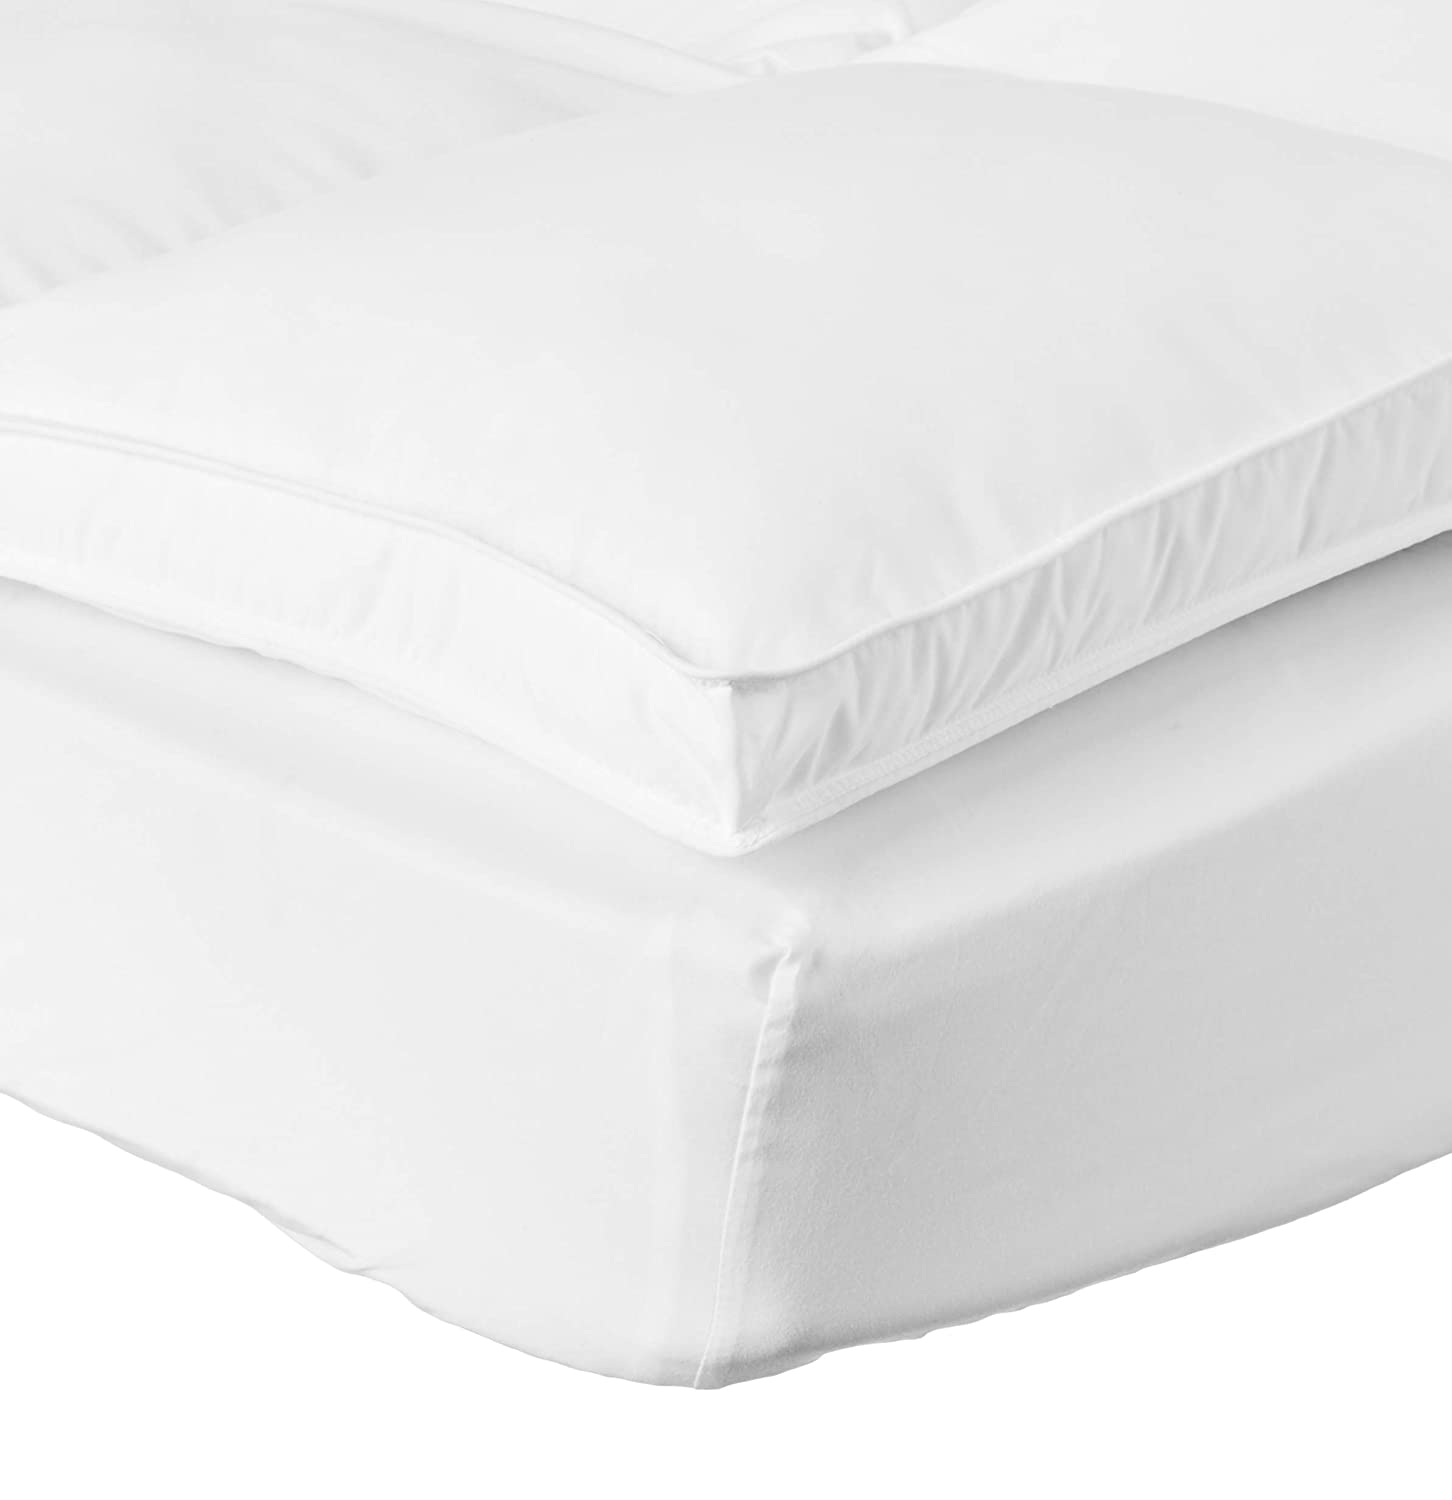 Superior Queen Mattress Topper, Hypoallergenic White Down Alternative Featherbed Mattress Pad – Plush, Overfilled, and 2 Thick